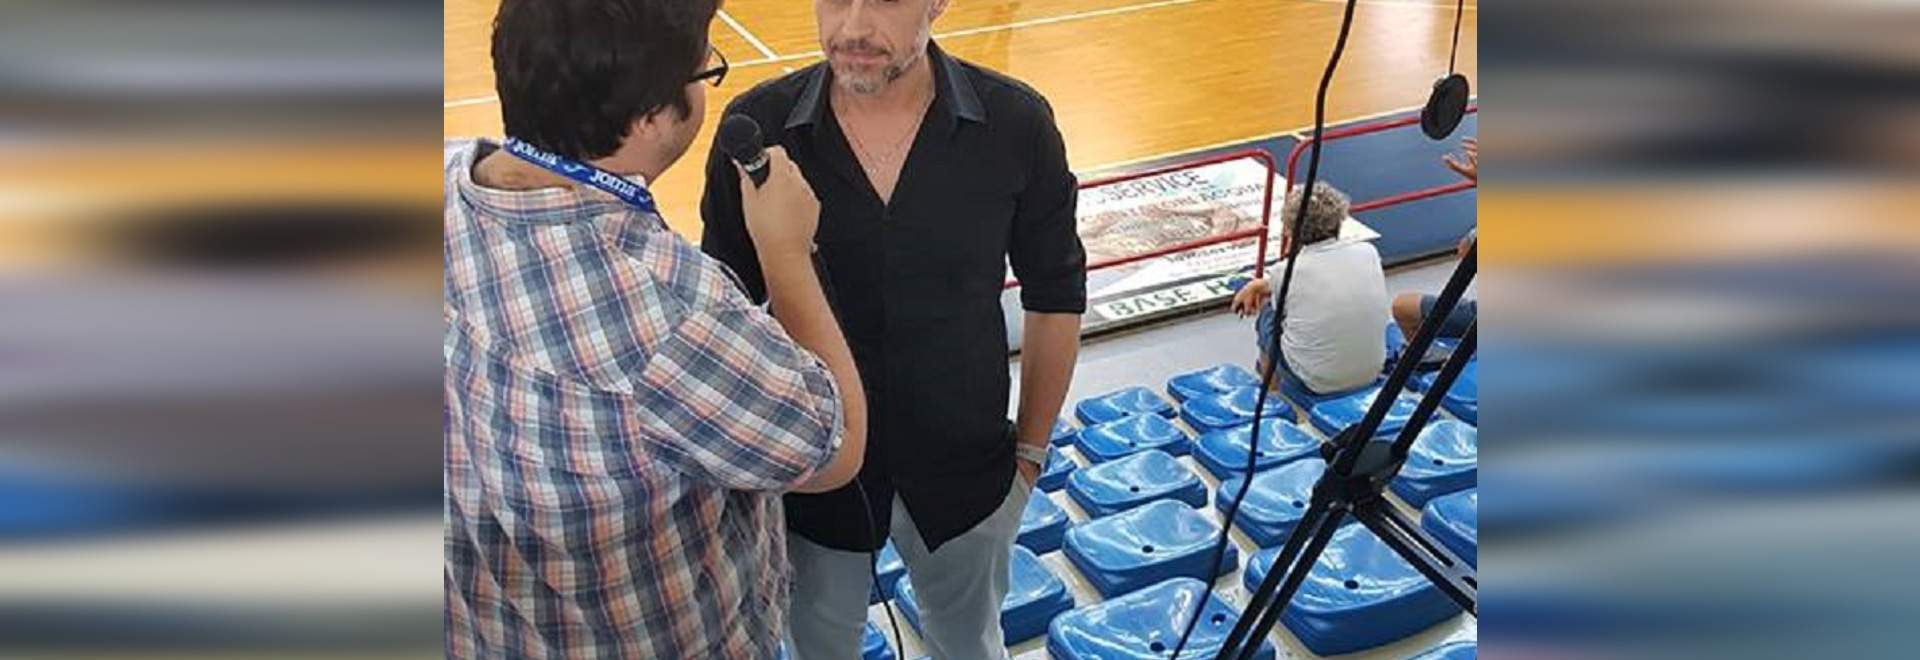 Interview for Joma with one of our MyBodyTest expert